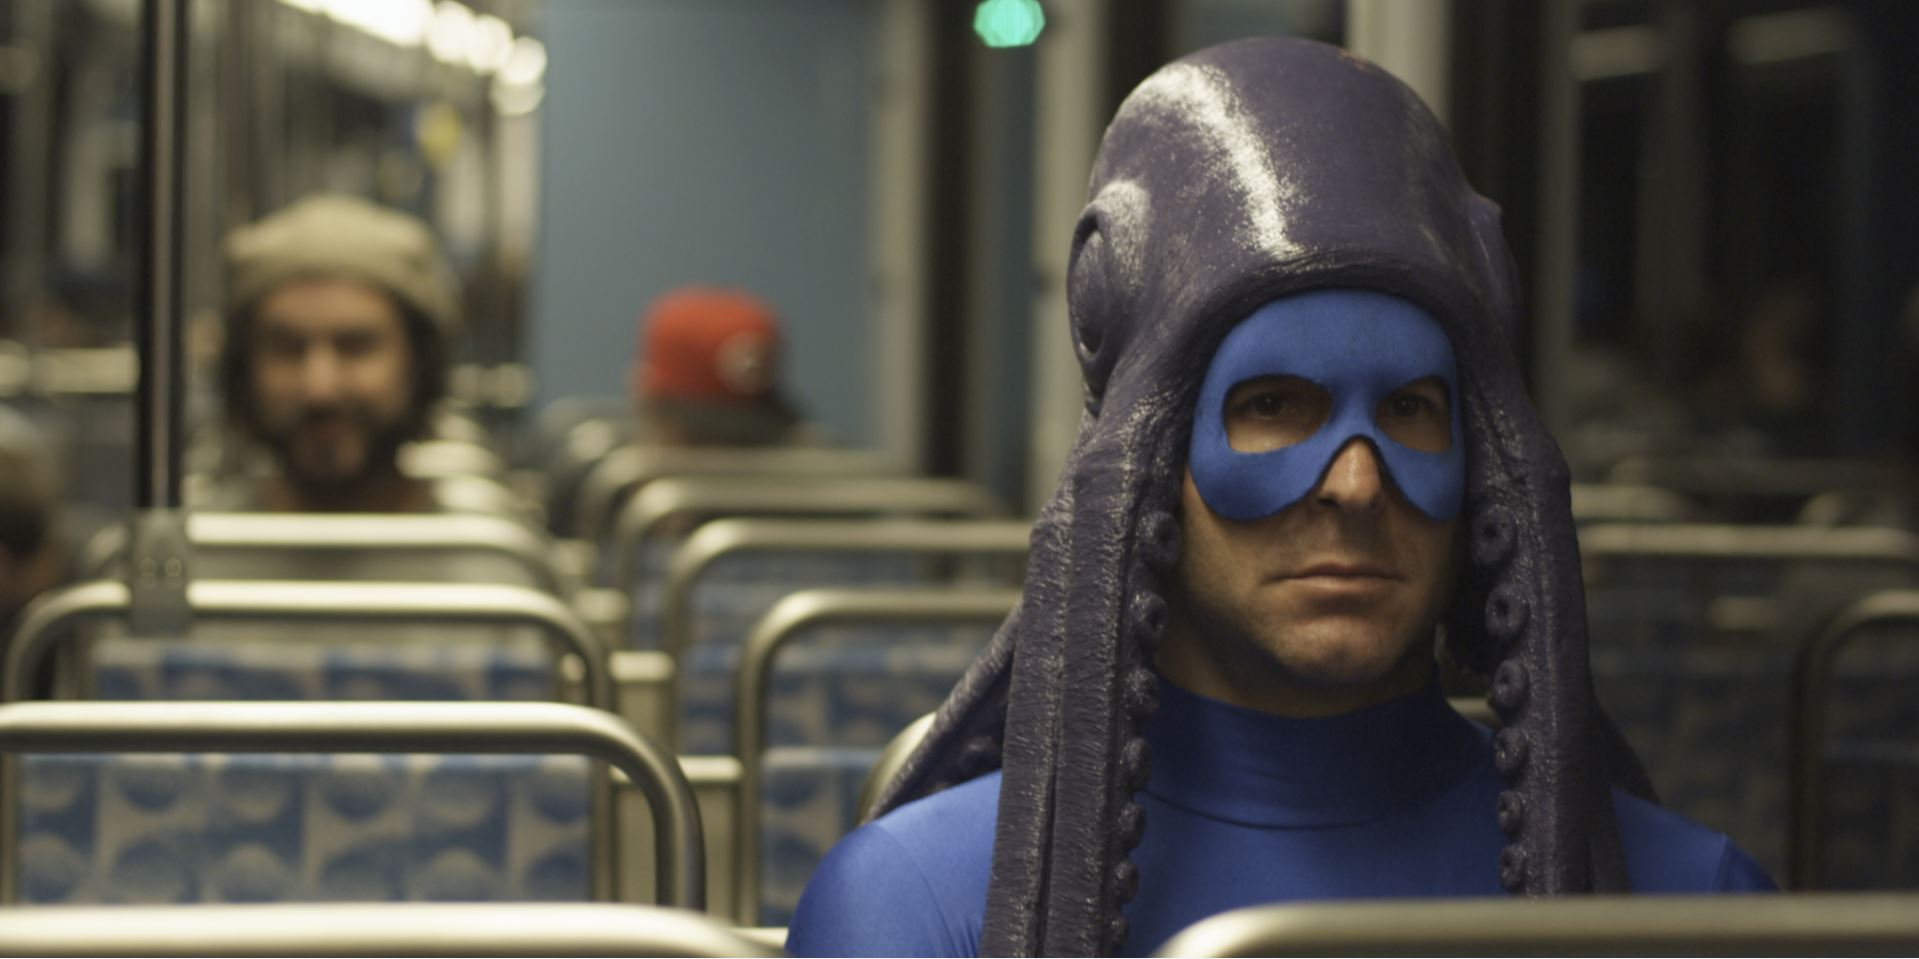 Squid Man on the Train